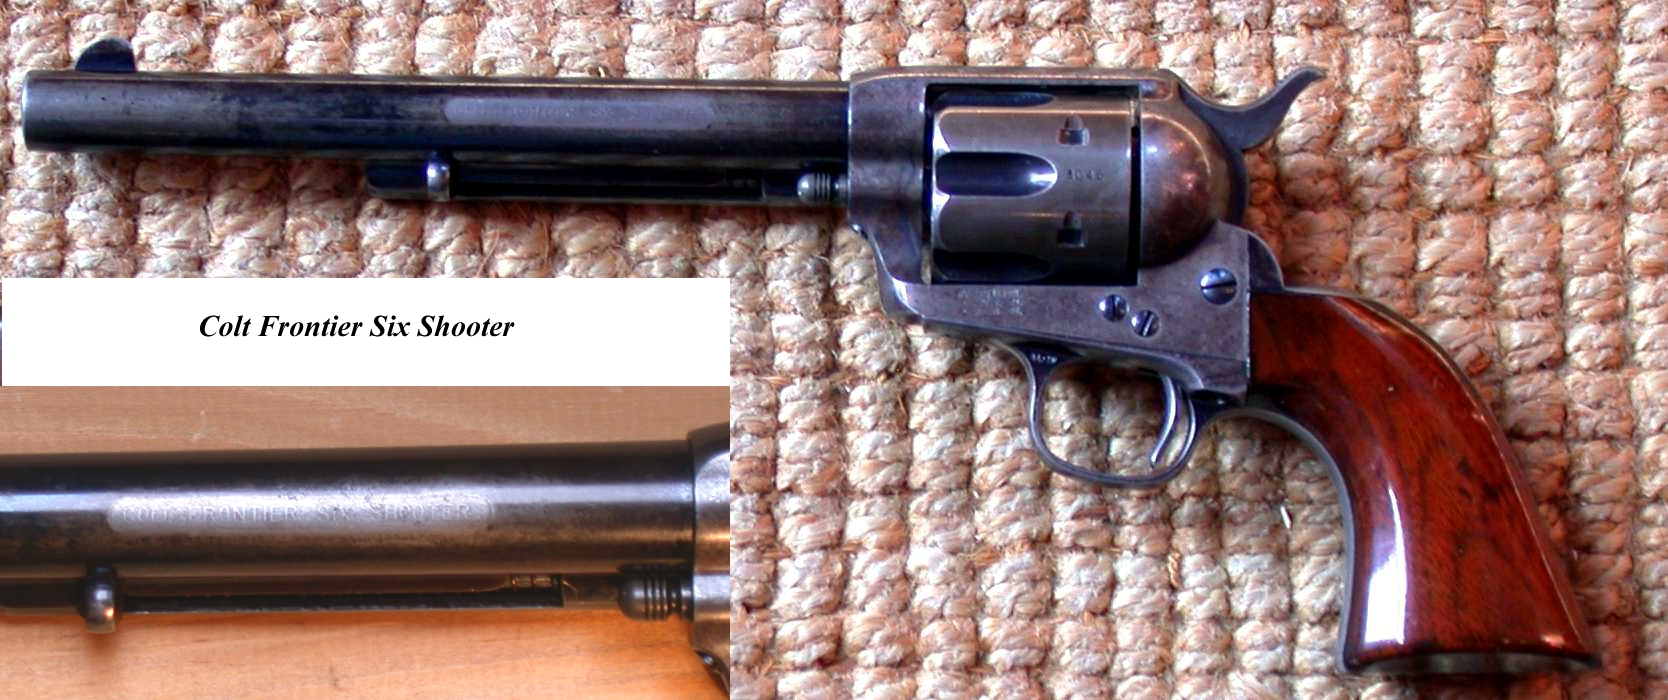 a history of the colt six shooter in texas Silver stars and six shooters a double-dose immersion into the history of the texas rangers and frontier life in the mid-1800s a replica of another early colt.